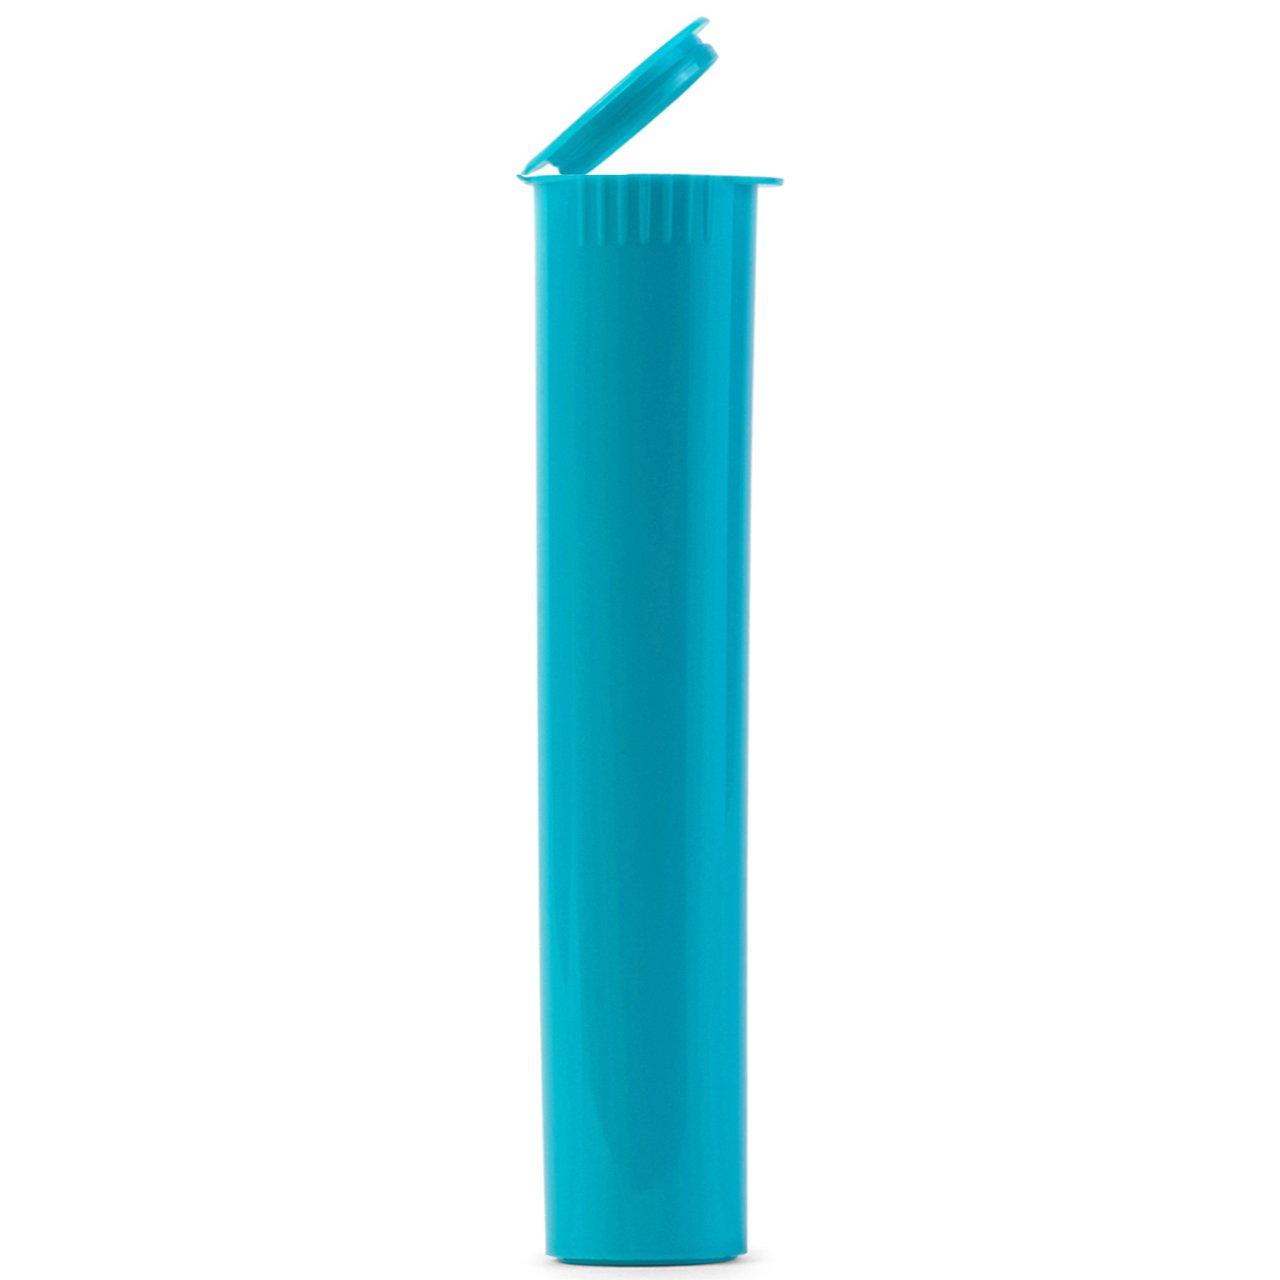 Beamer 120mm Airtight Squeeze Tubes - Smell-Proof, Waterproof, Travel-Friendly, Discreet - Preserve and Protect Your Products - Fits Cigarettes, Joints, Cones - Bulk 600 Count - Various Colors